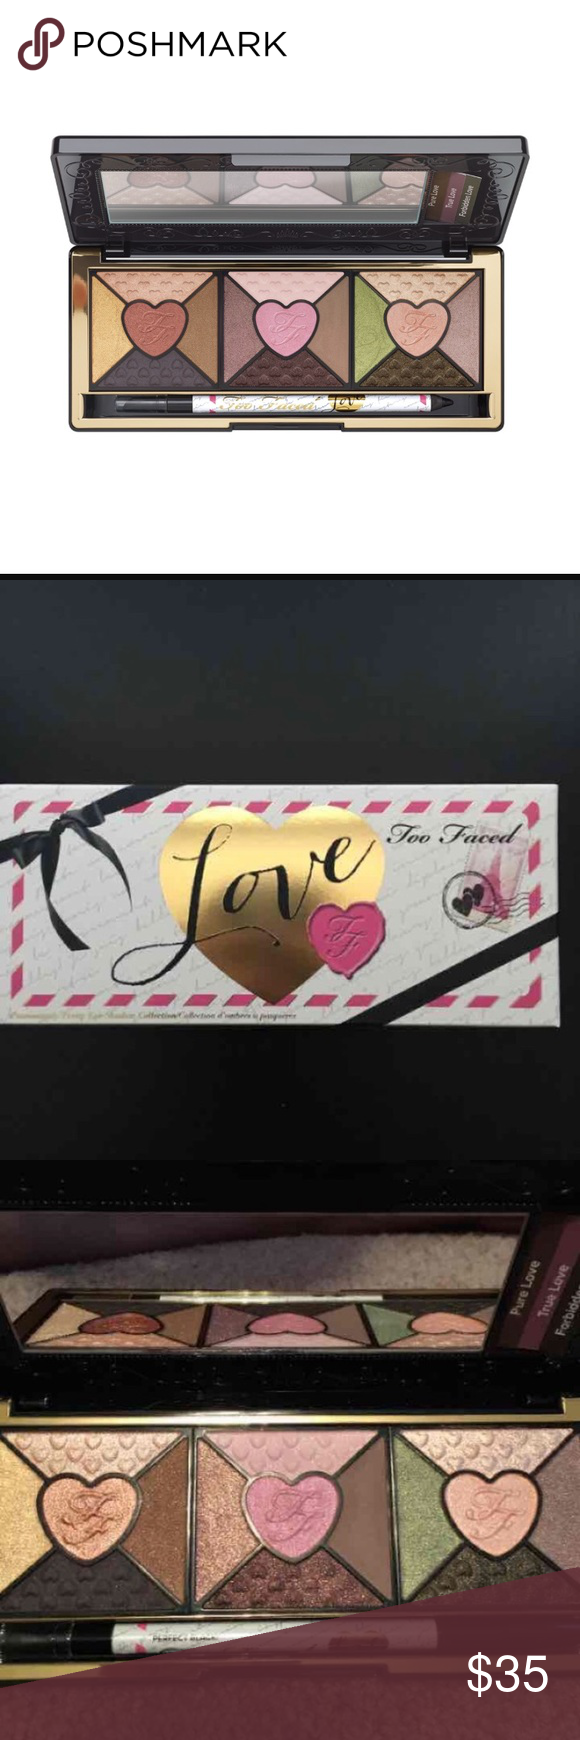 Too Faced Love Palette New eyeshadow palette with full